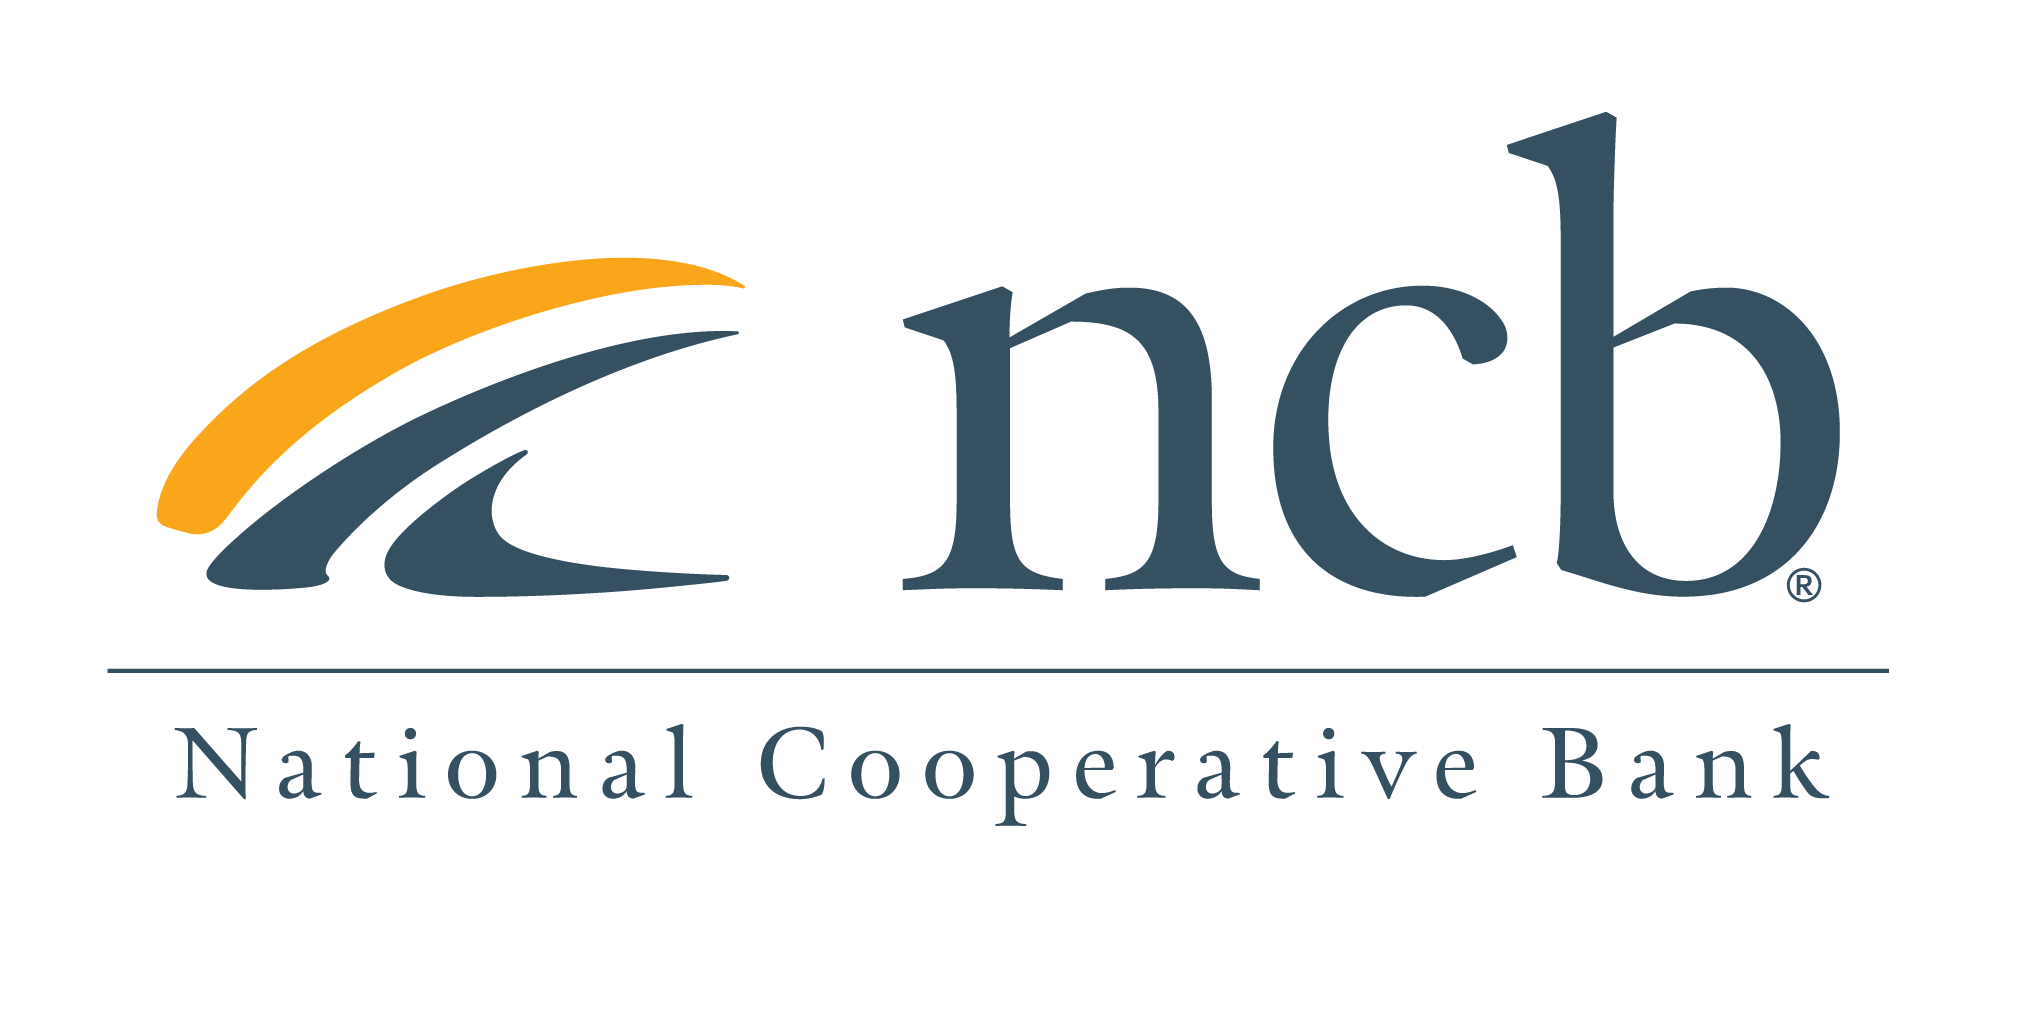 National Cooperative Bank